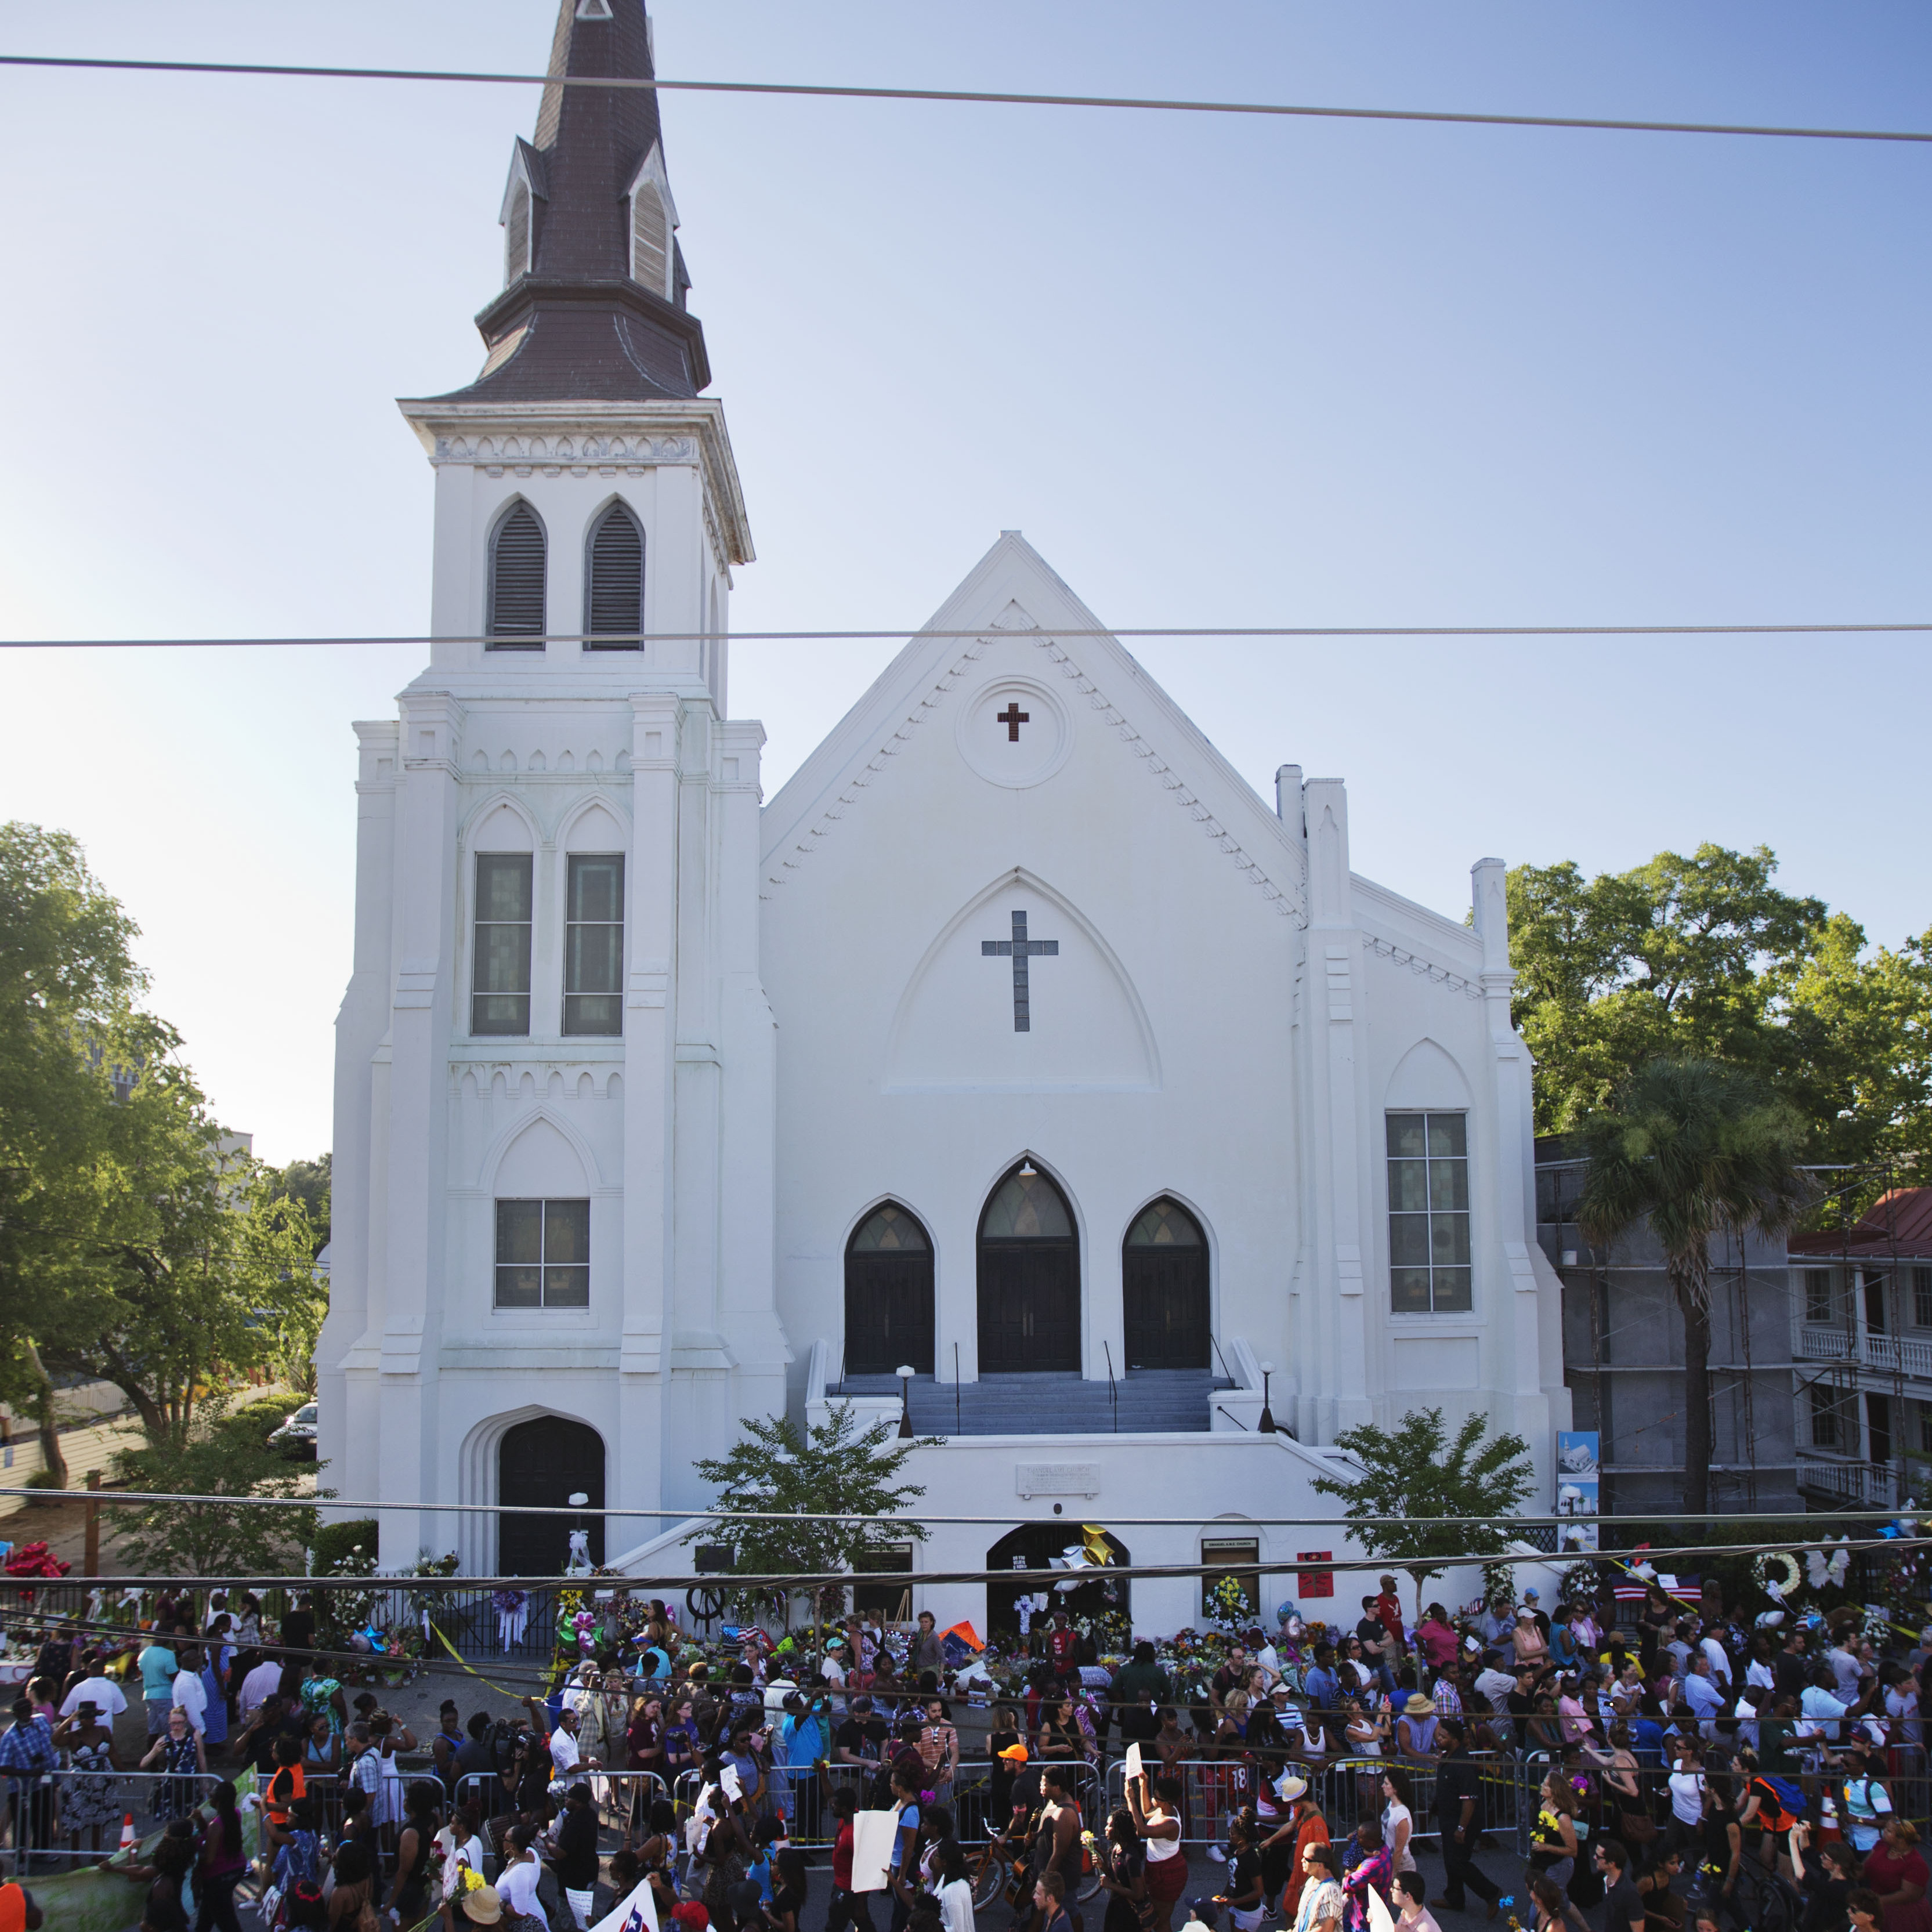 A remembrance march in memory of the Emanuel AME Church shooting victims passes a sidewalk memorial in front of the church on Saturday. The church today will hold its first Sunday service since Wednesday's shooting. David Goldman/AP